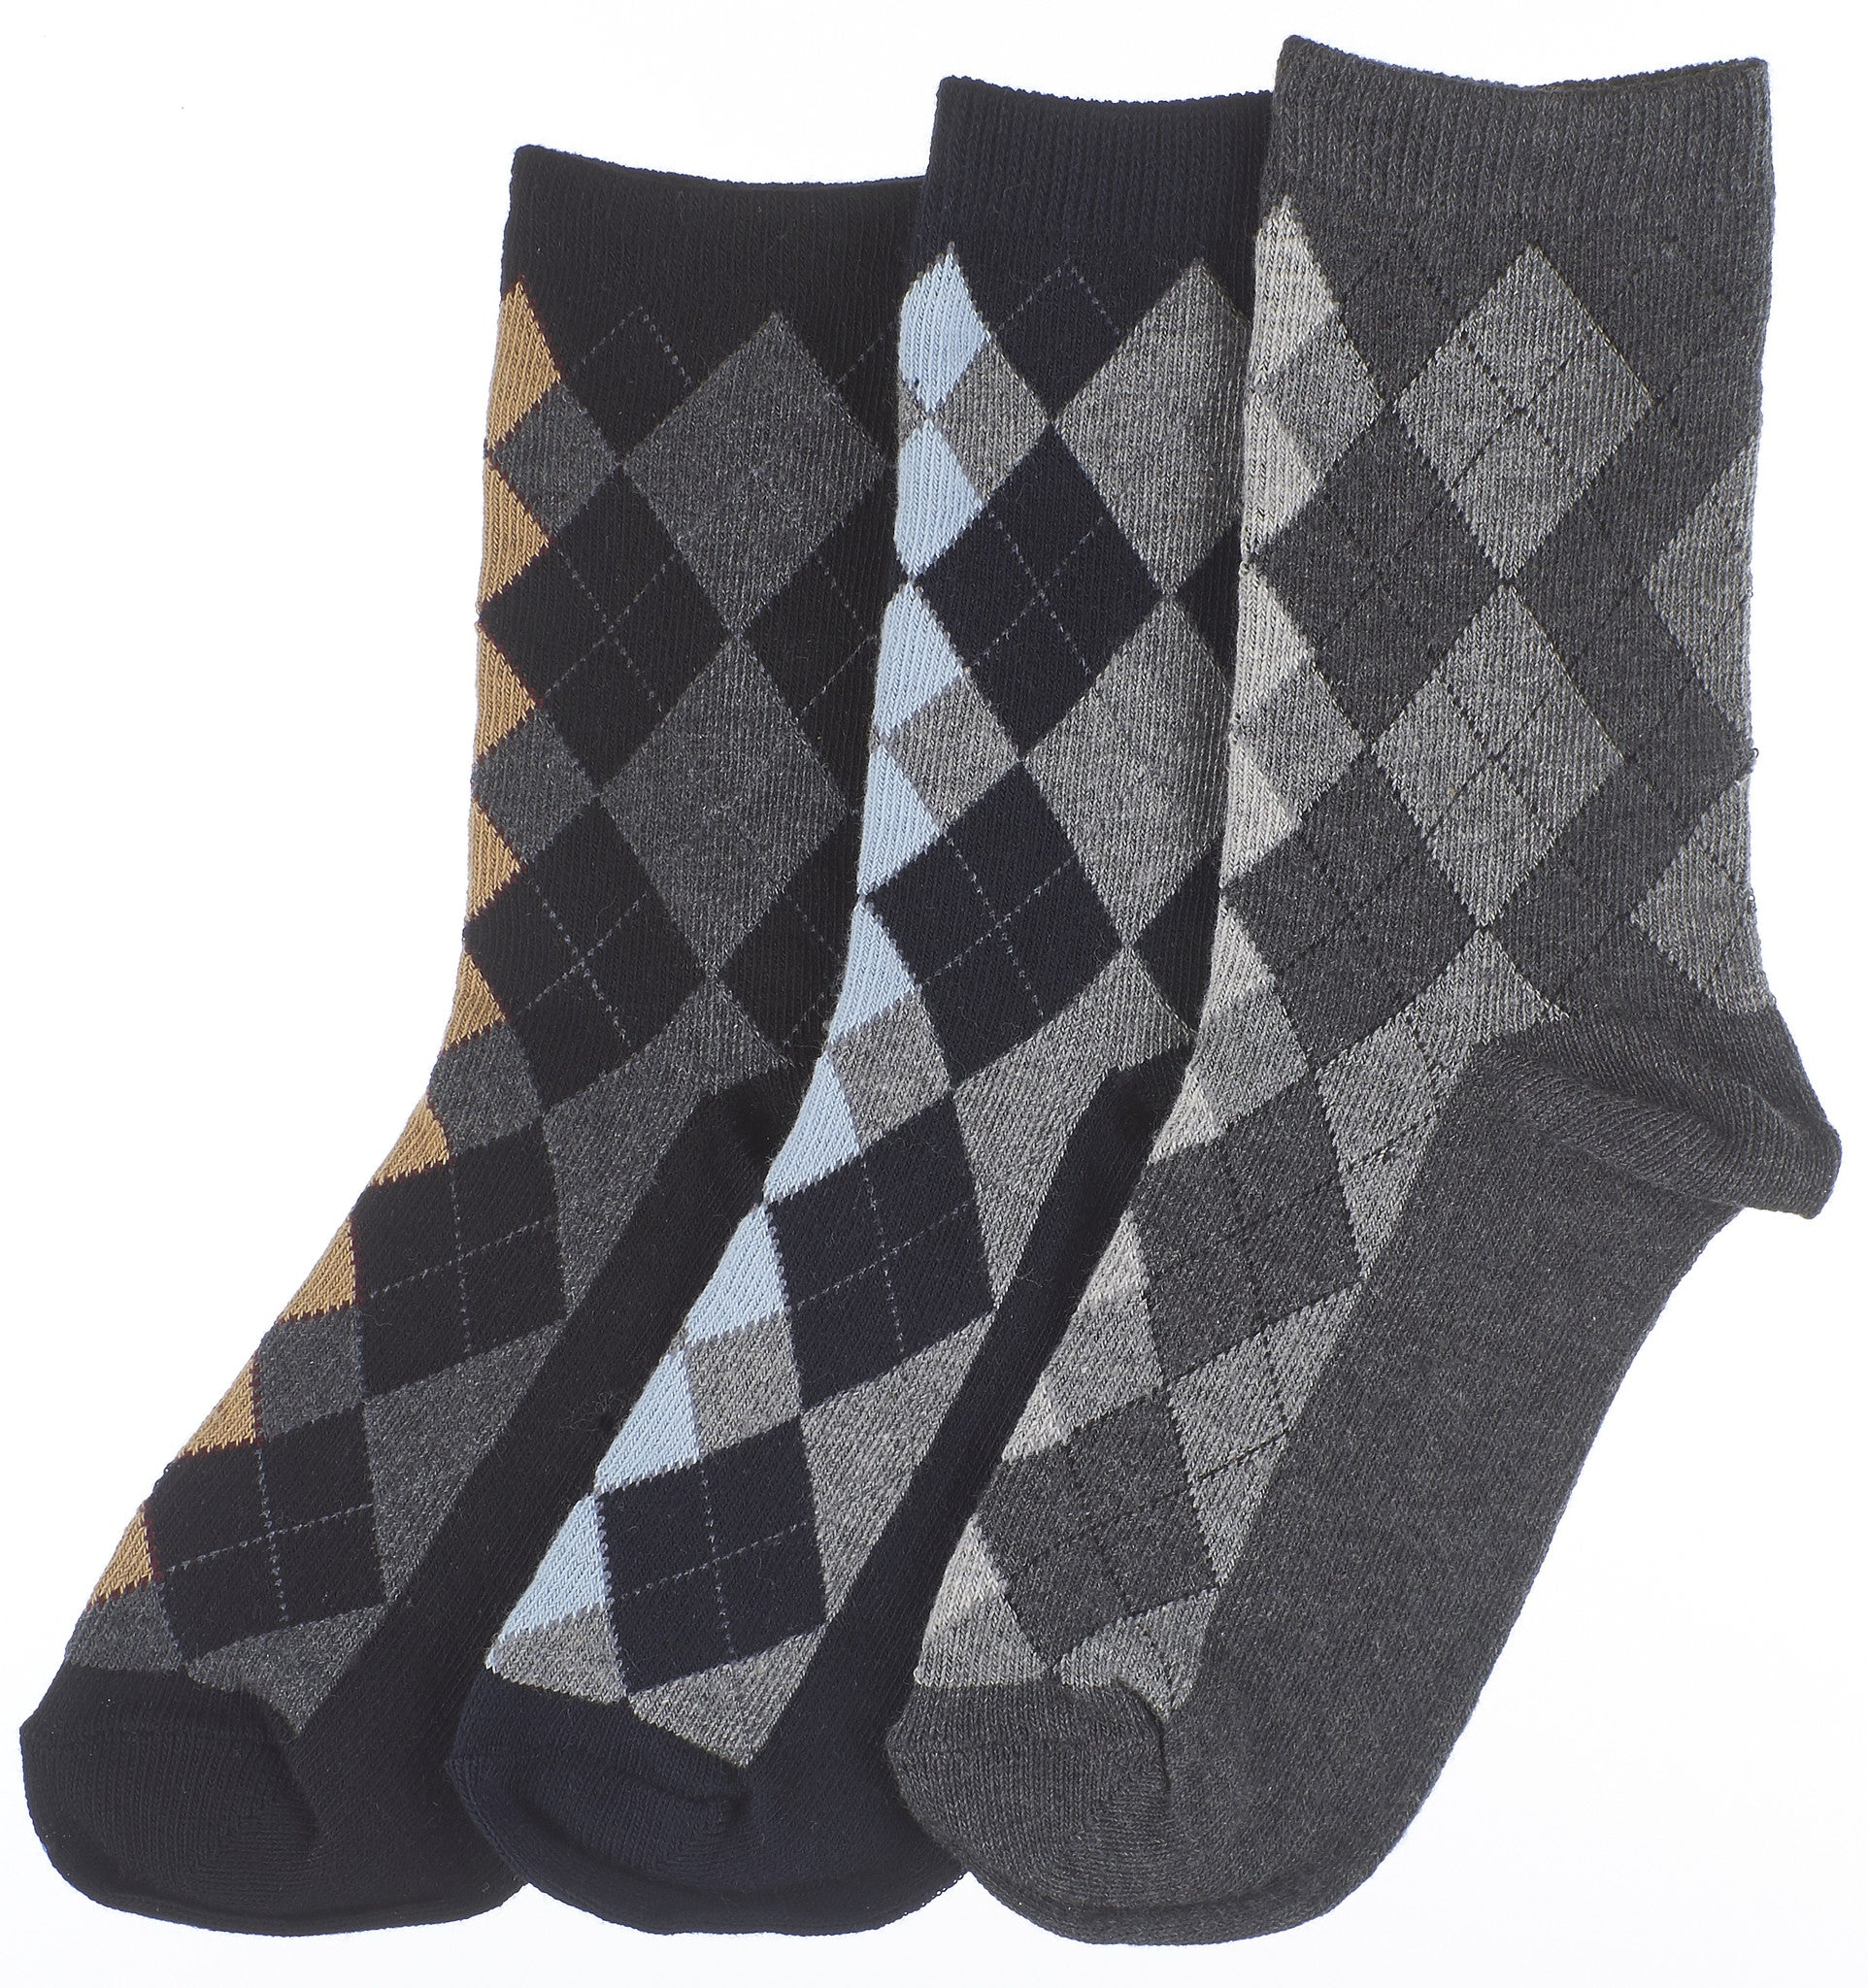 3-Pack Classic Panel Argyle Boys Crew Socks (Navy/Oxford Grey/Black)